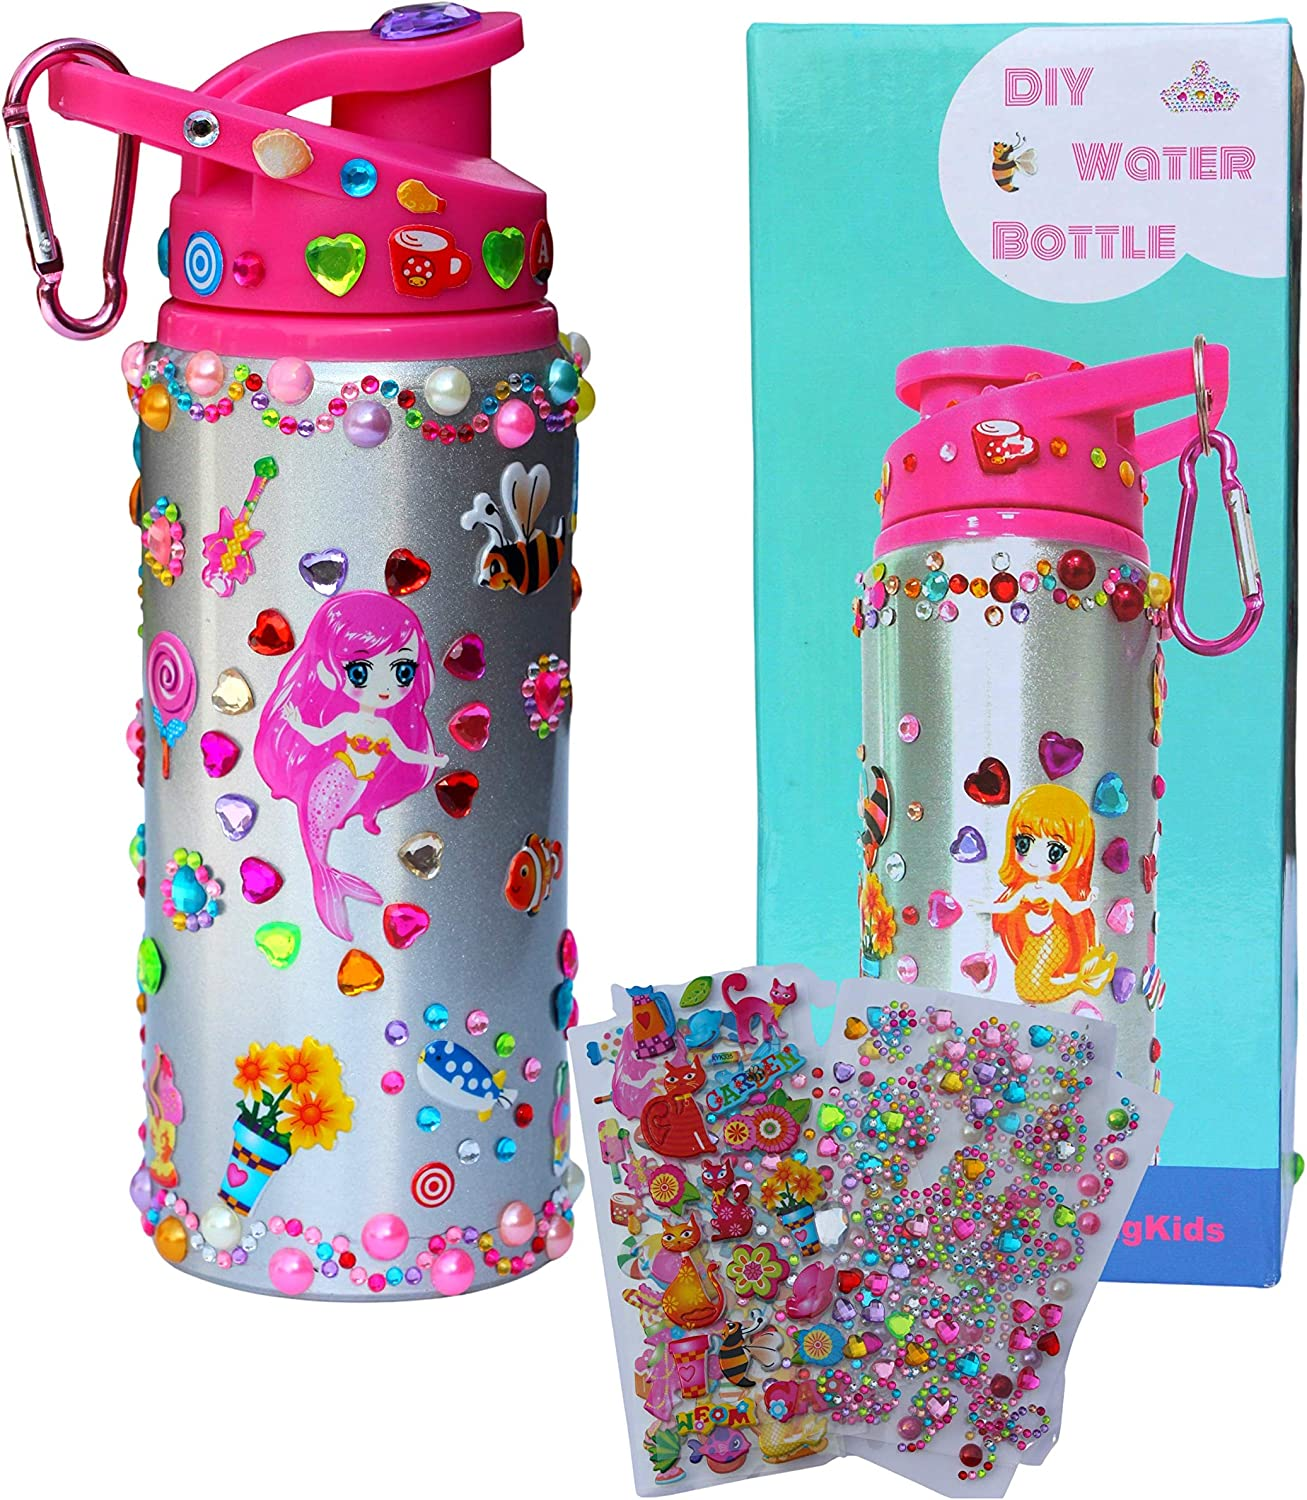 Decorate Your Own Water Bottle with Tons of Rhinestone Glitter Gem Stickers Pink Fun DIY Art Craft Kit for Kids- 12OZ BPA Free 304 Stainless Steel Insulated Kids Water Bottle DIY Gifts for Girls